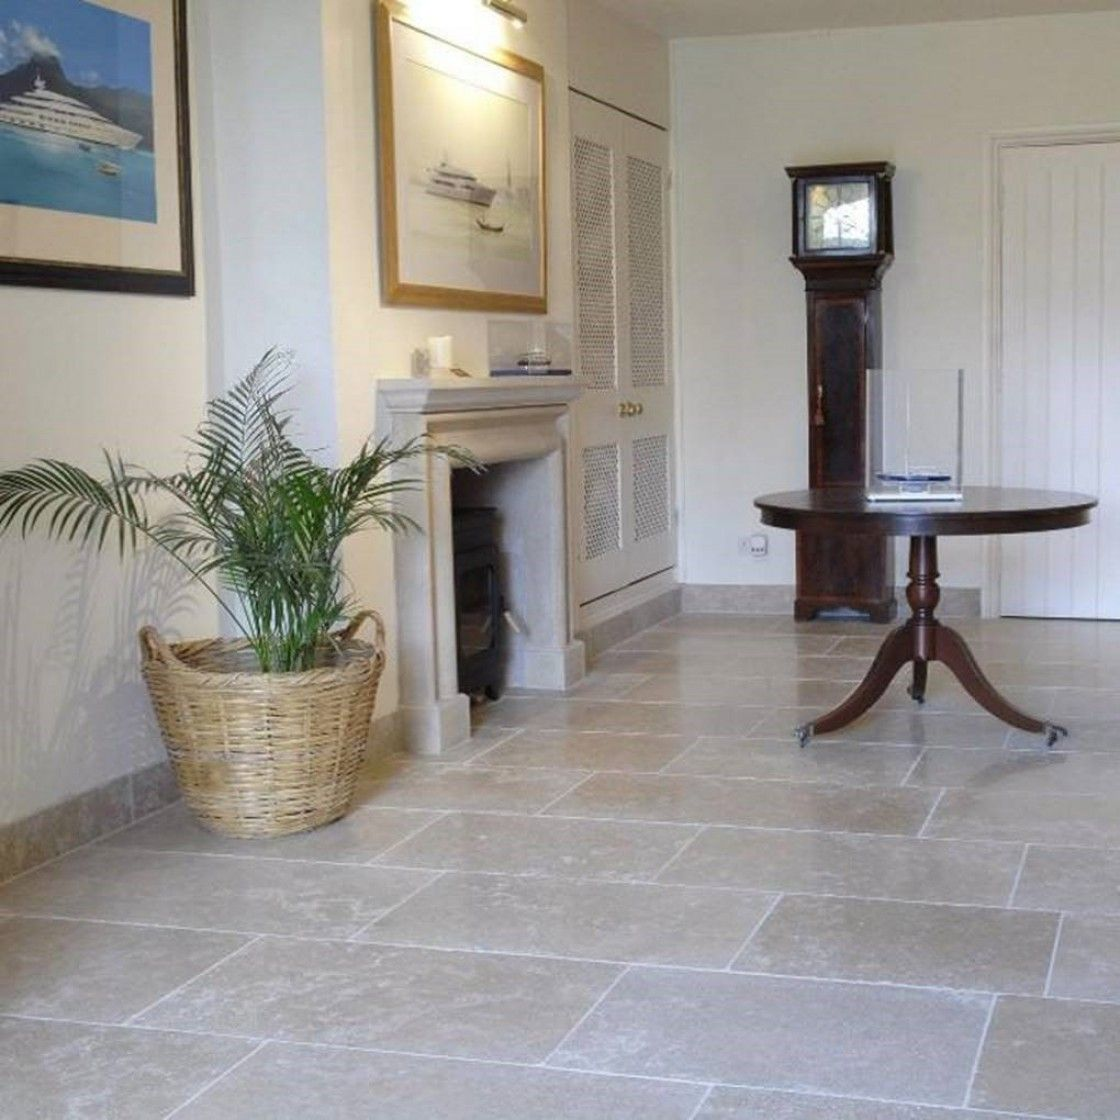 Dijon Tumbled Limestone within a living area setting | Indoor living ...